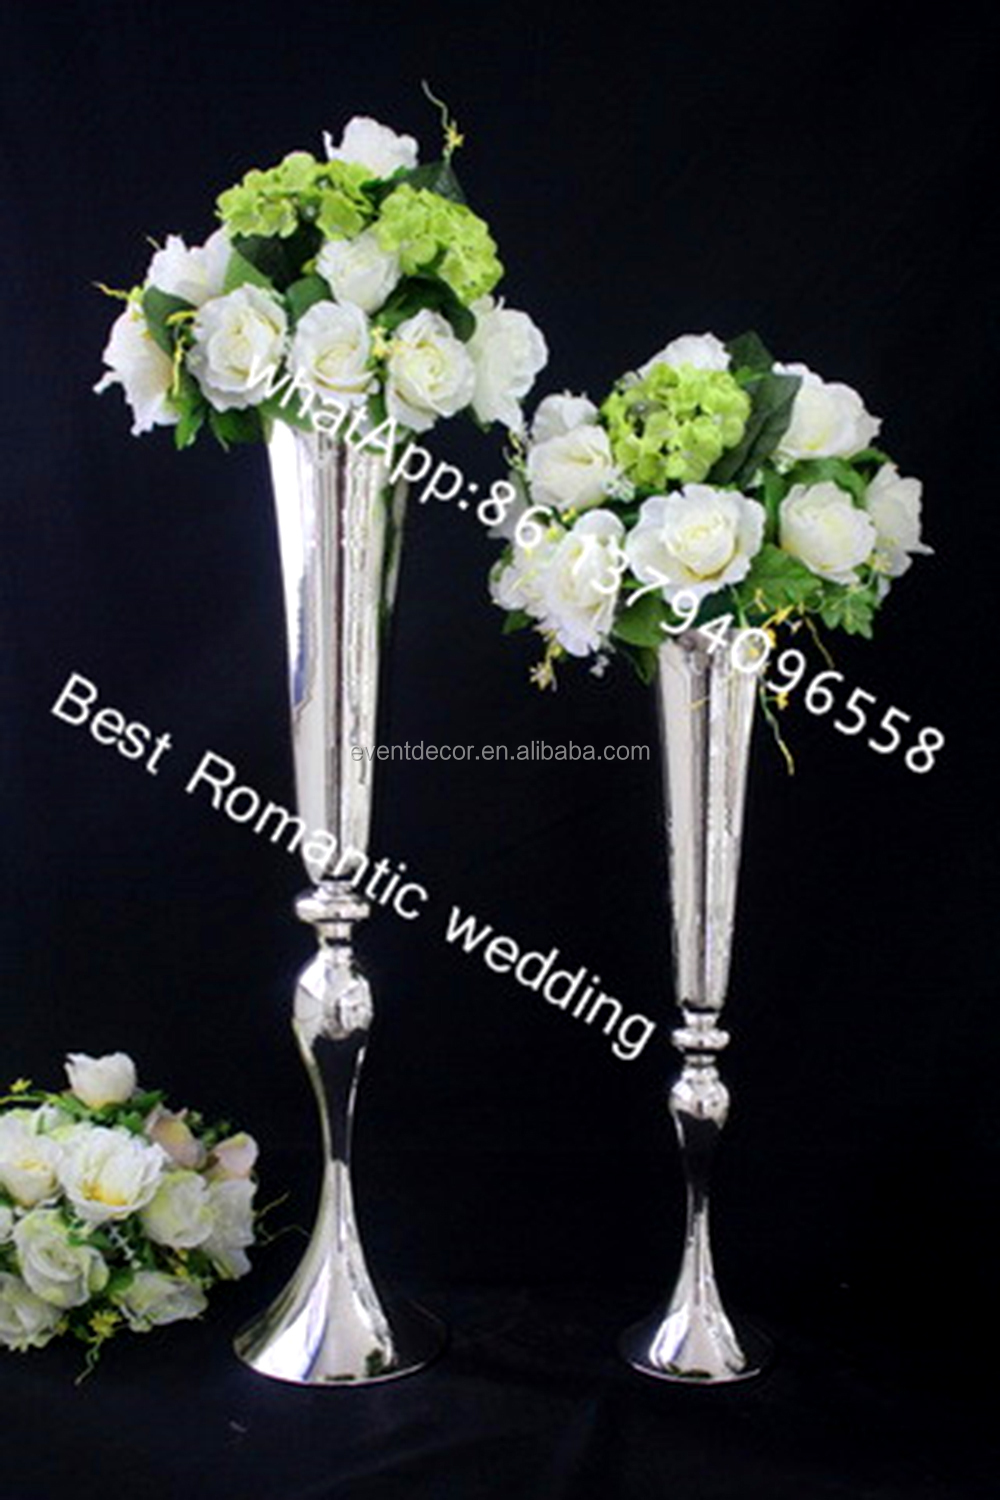 Elegant vase wedding centerpieces tall metal vases wedding view elegant vase wedding centerpieces tall metal vases wedding reviewsmspy